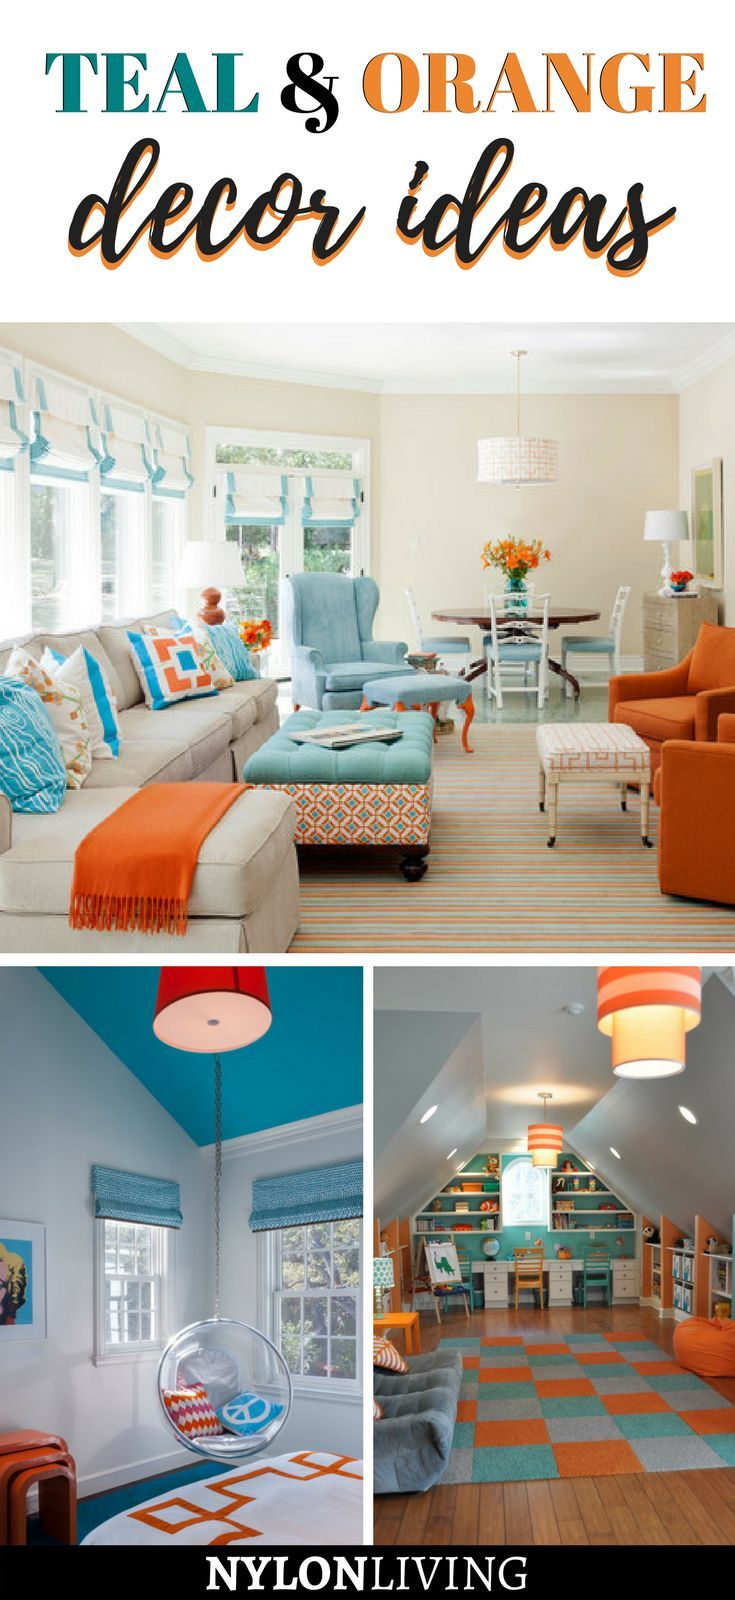 teal and orange decor | Simplify your home. | Living room orange ...